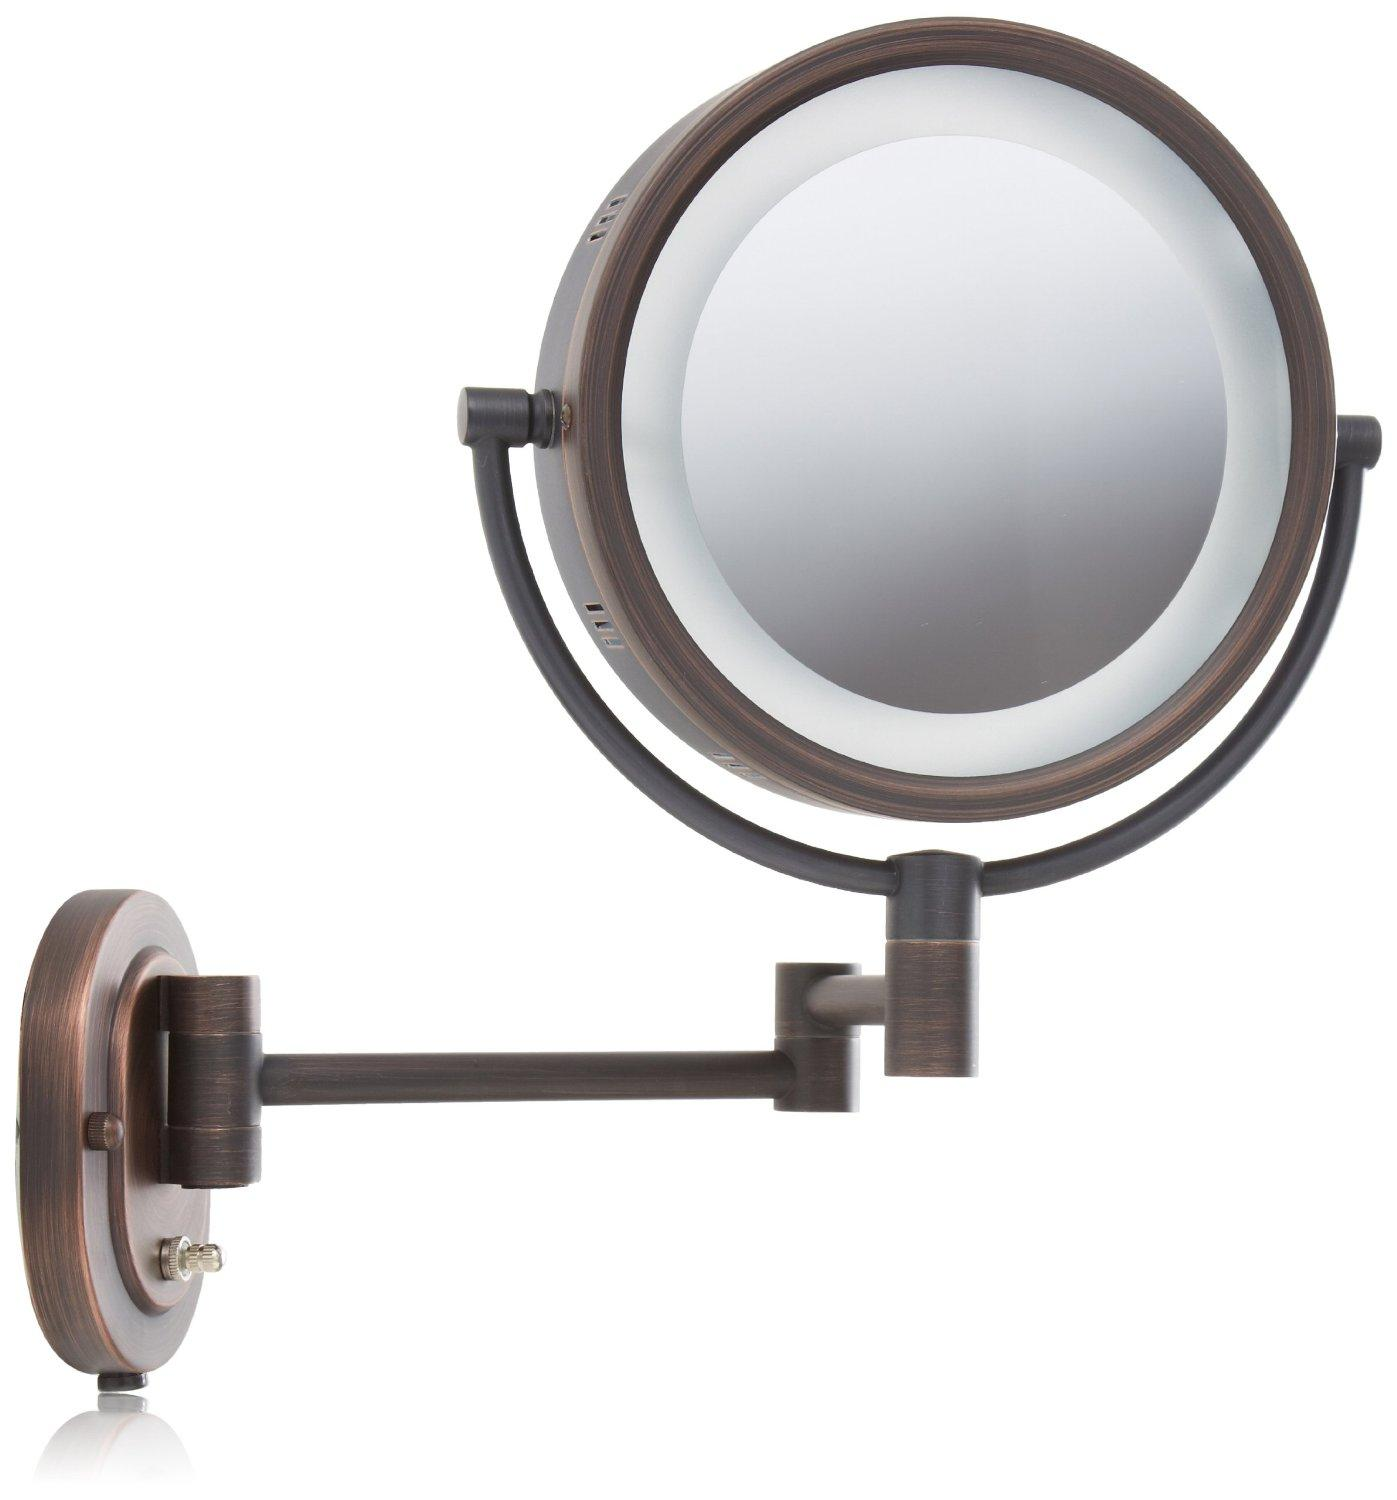 Amazon.com : Jerdon HL65BZ 8-Inch Lighted Wall Mount Makeup Mirror with 5x Magnification, Bronze ...